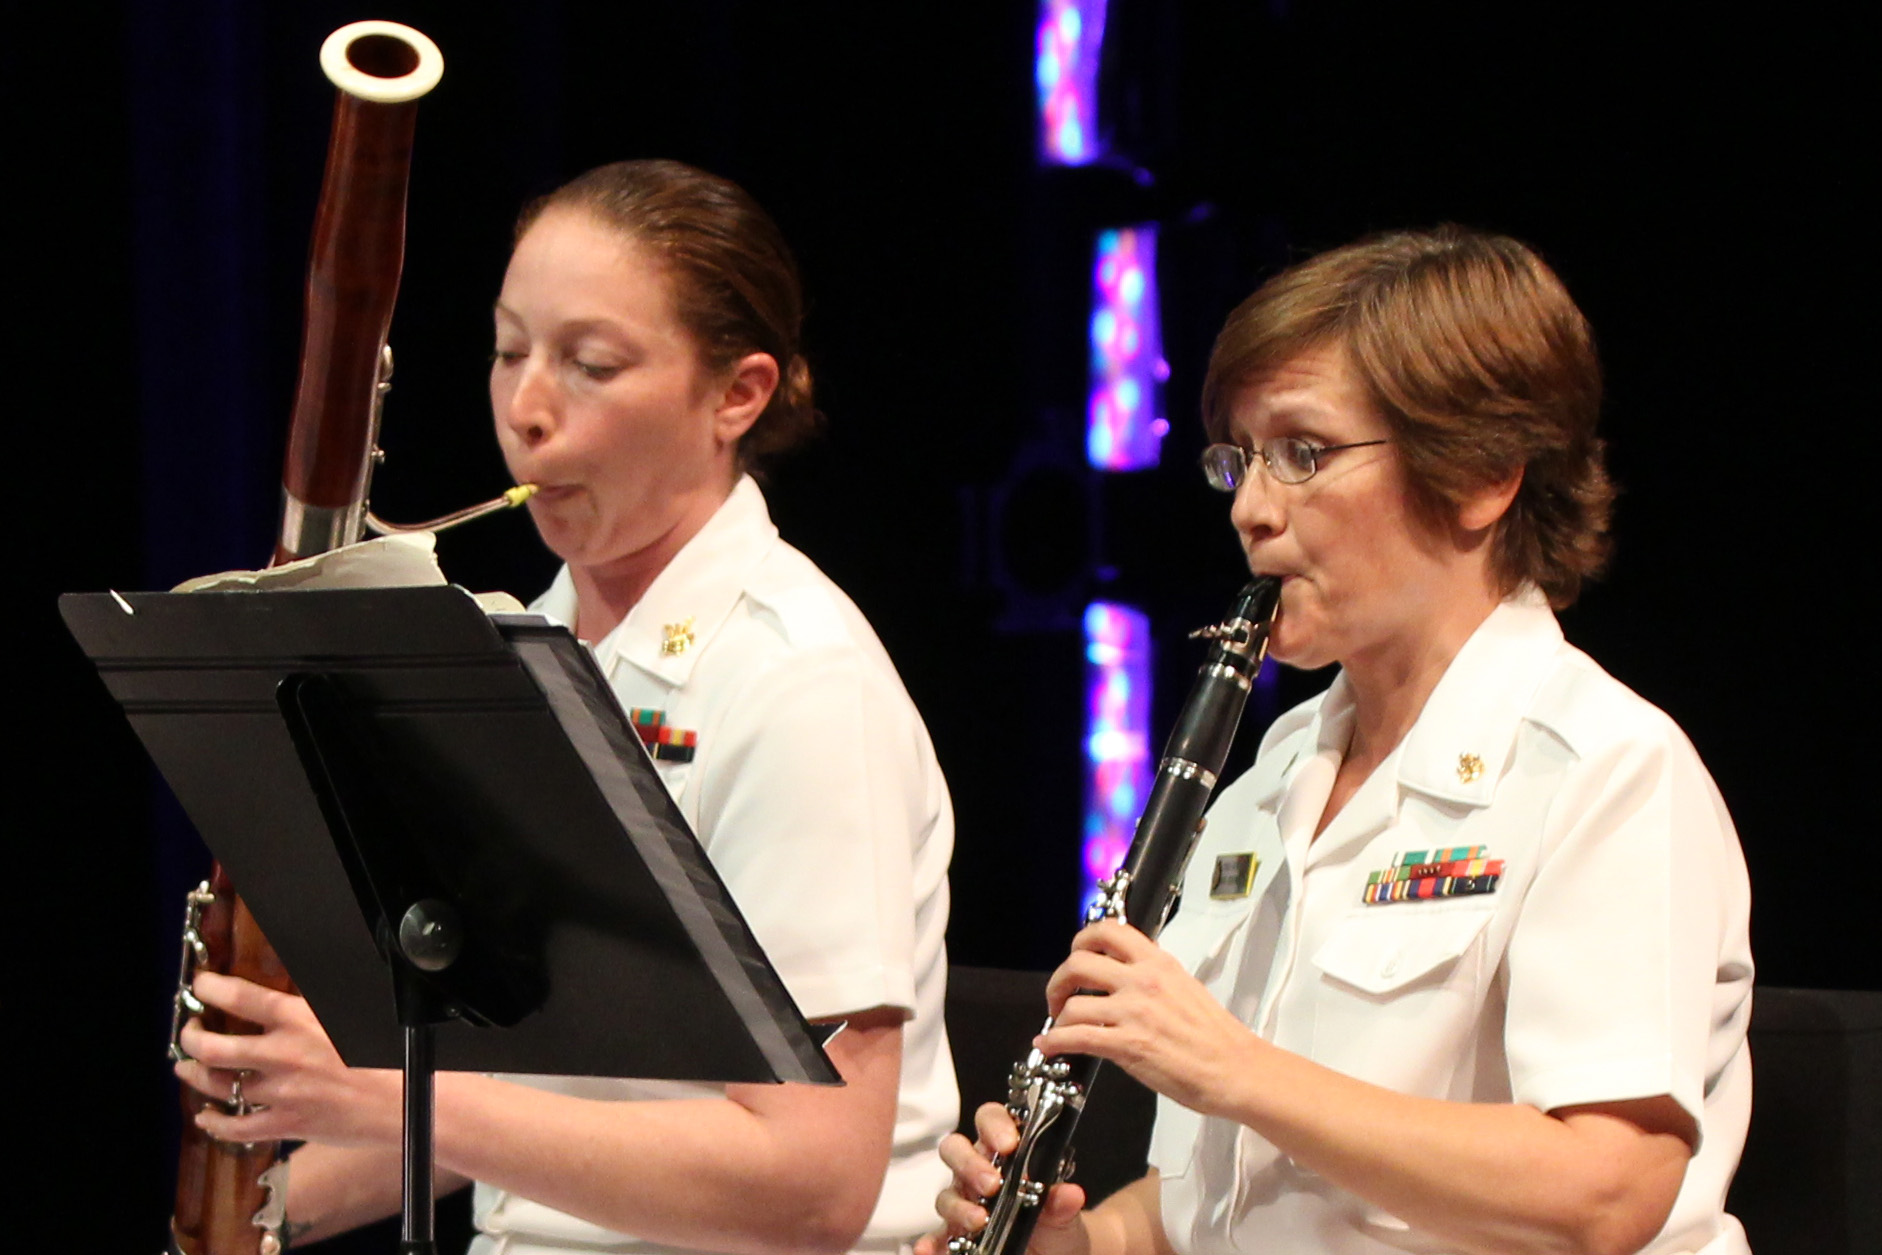 The United States Naval Academy Wind Quintet